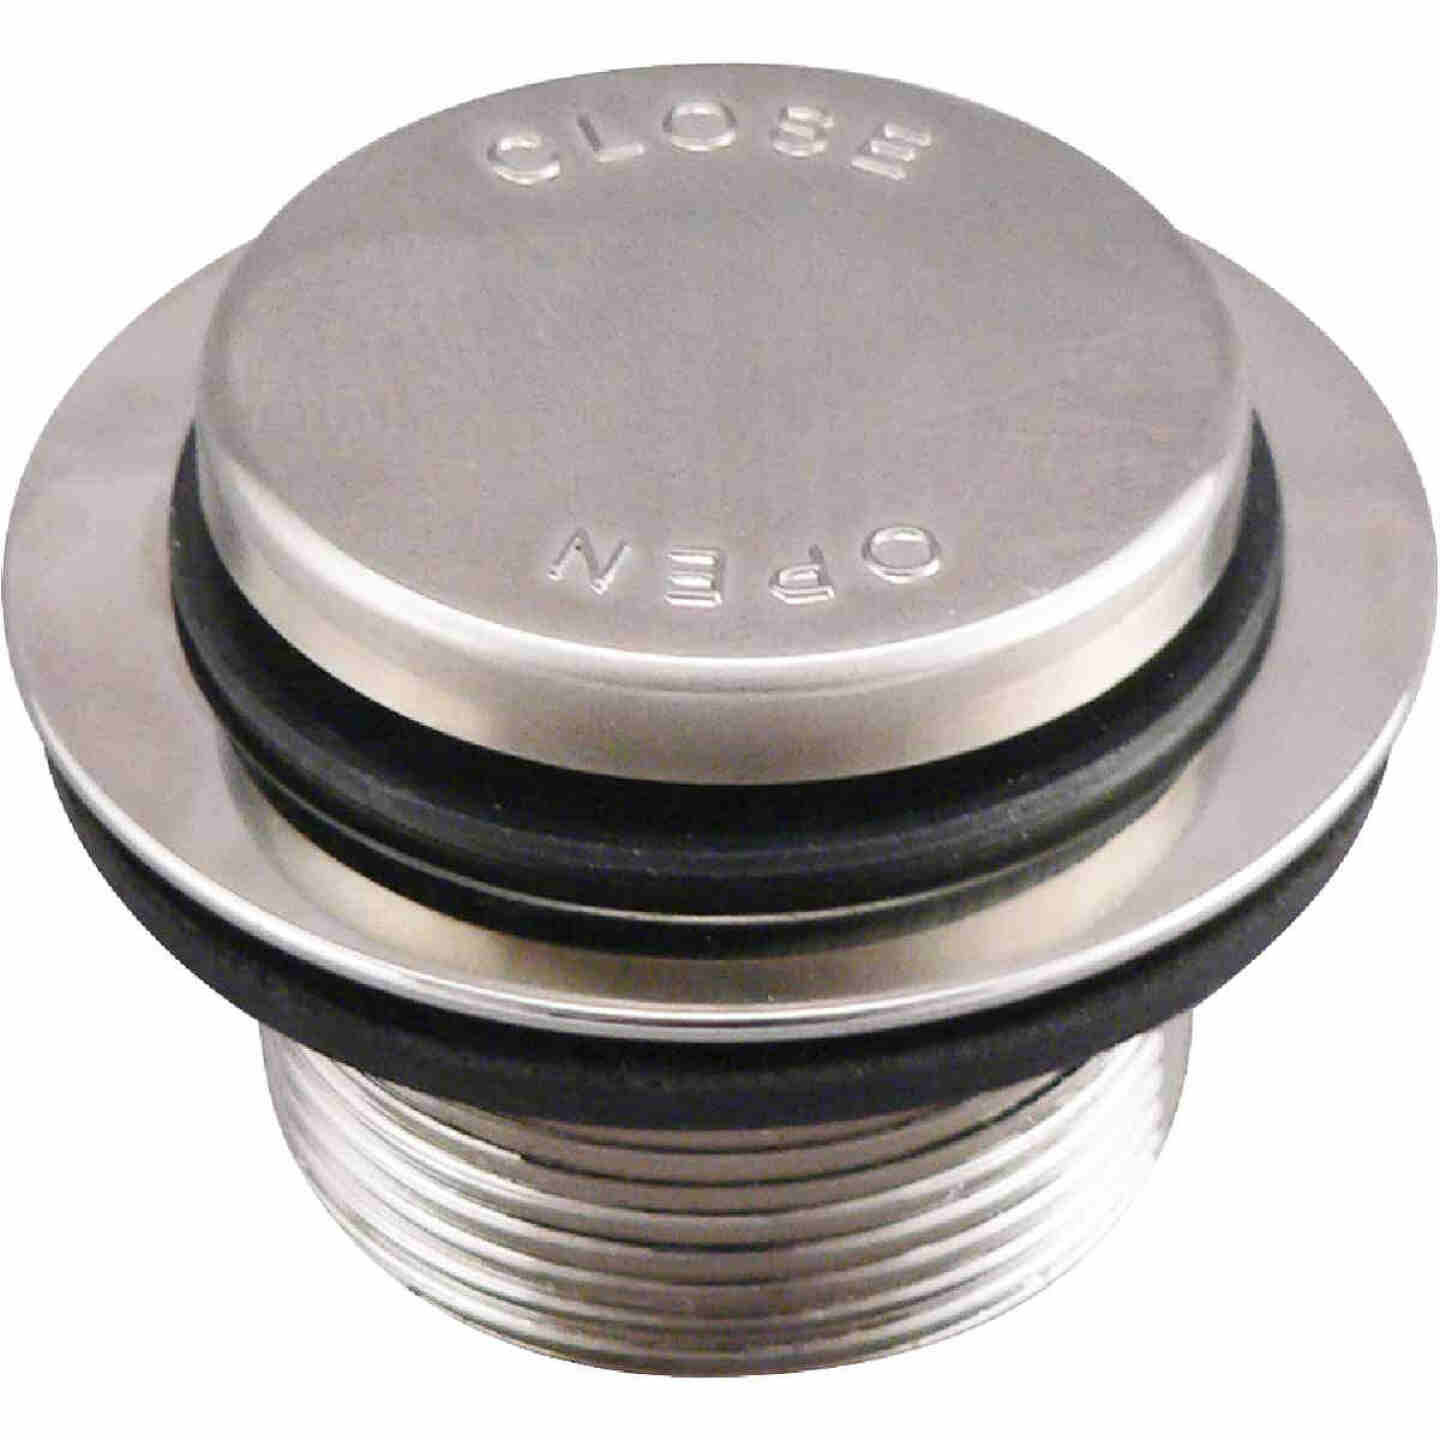 Do it Foot Lok Stop Bathtub Drain Stopper with Brushed Nickel Finish Image 1